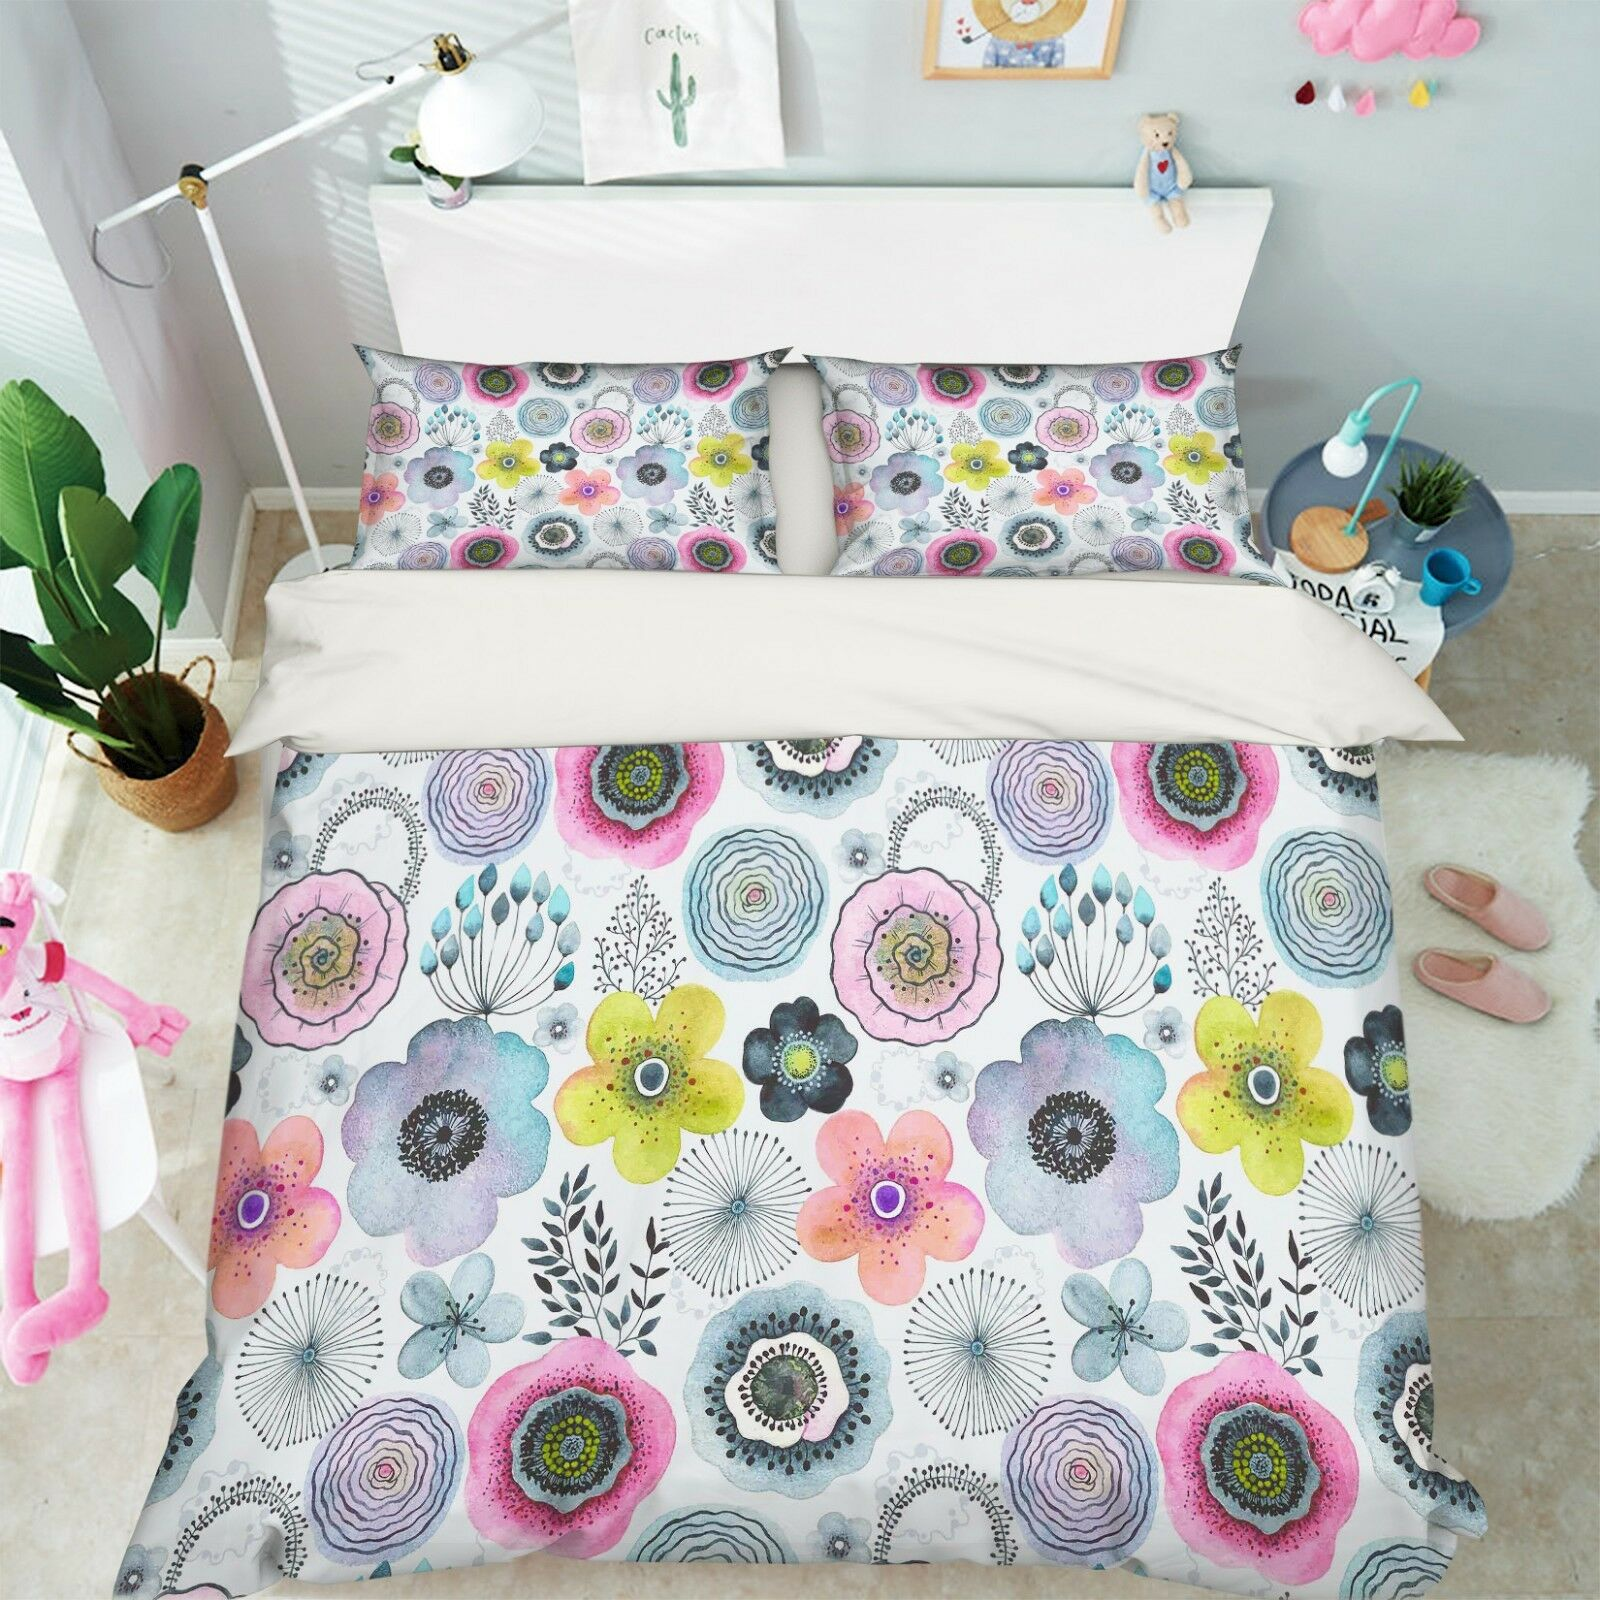 3D Painted Flowers 99 Bed Pillowcases Quilt Duvet Cover Set Single Queen King CA